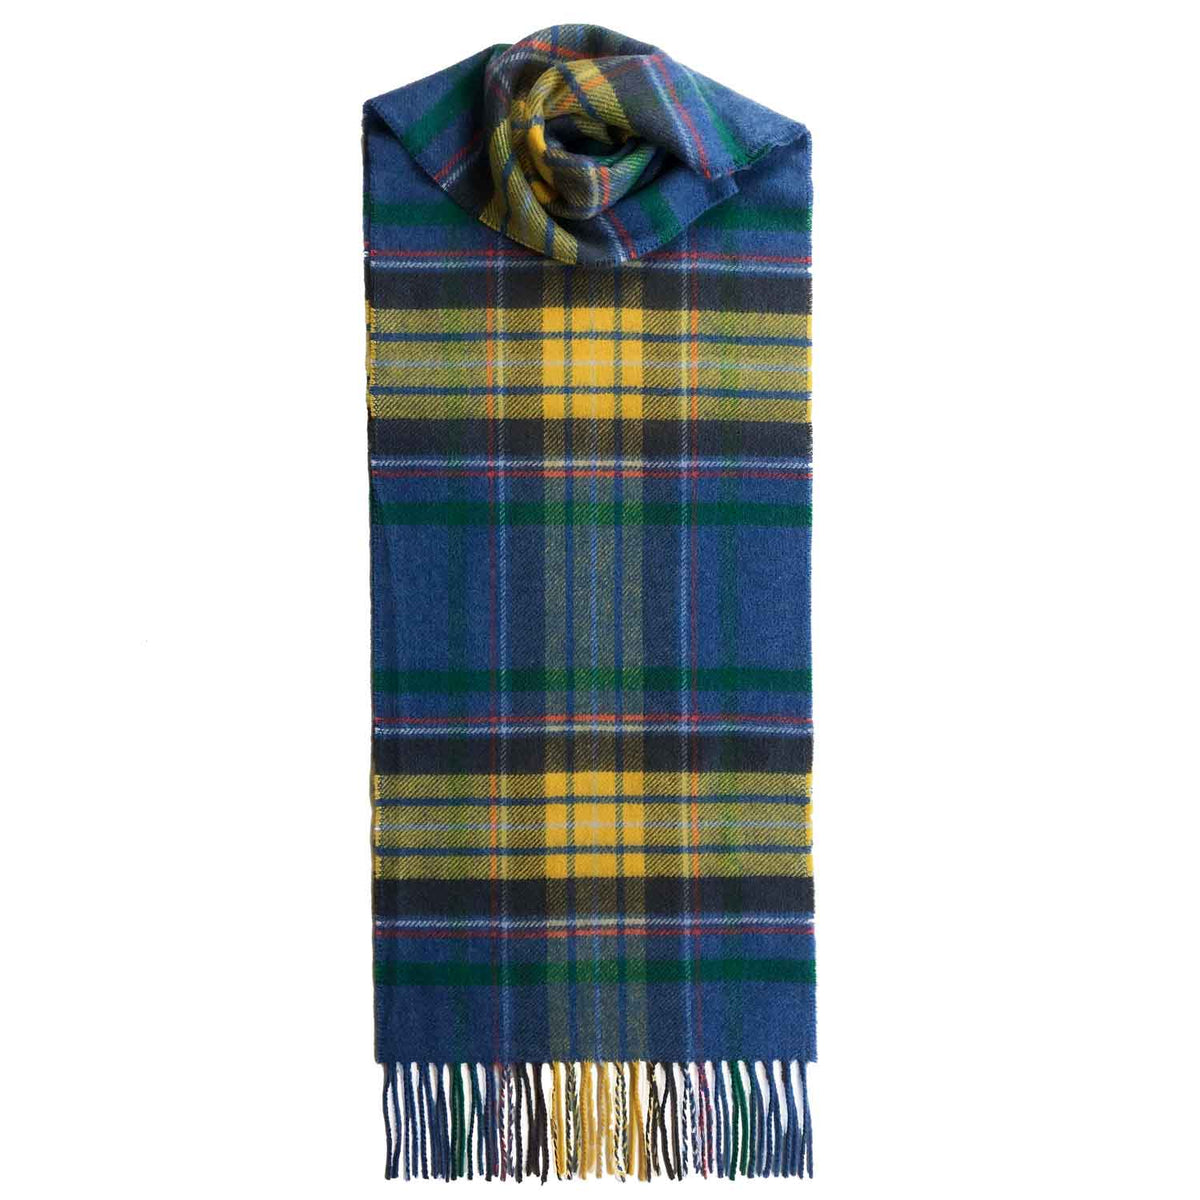 Lomond Cashmere | Blue Yellow | Check Cashmere Scarf With Fringes | Made in Scotland | Shop at The Cashmere Choice | London